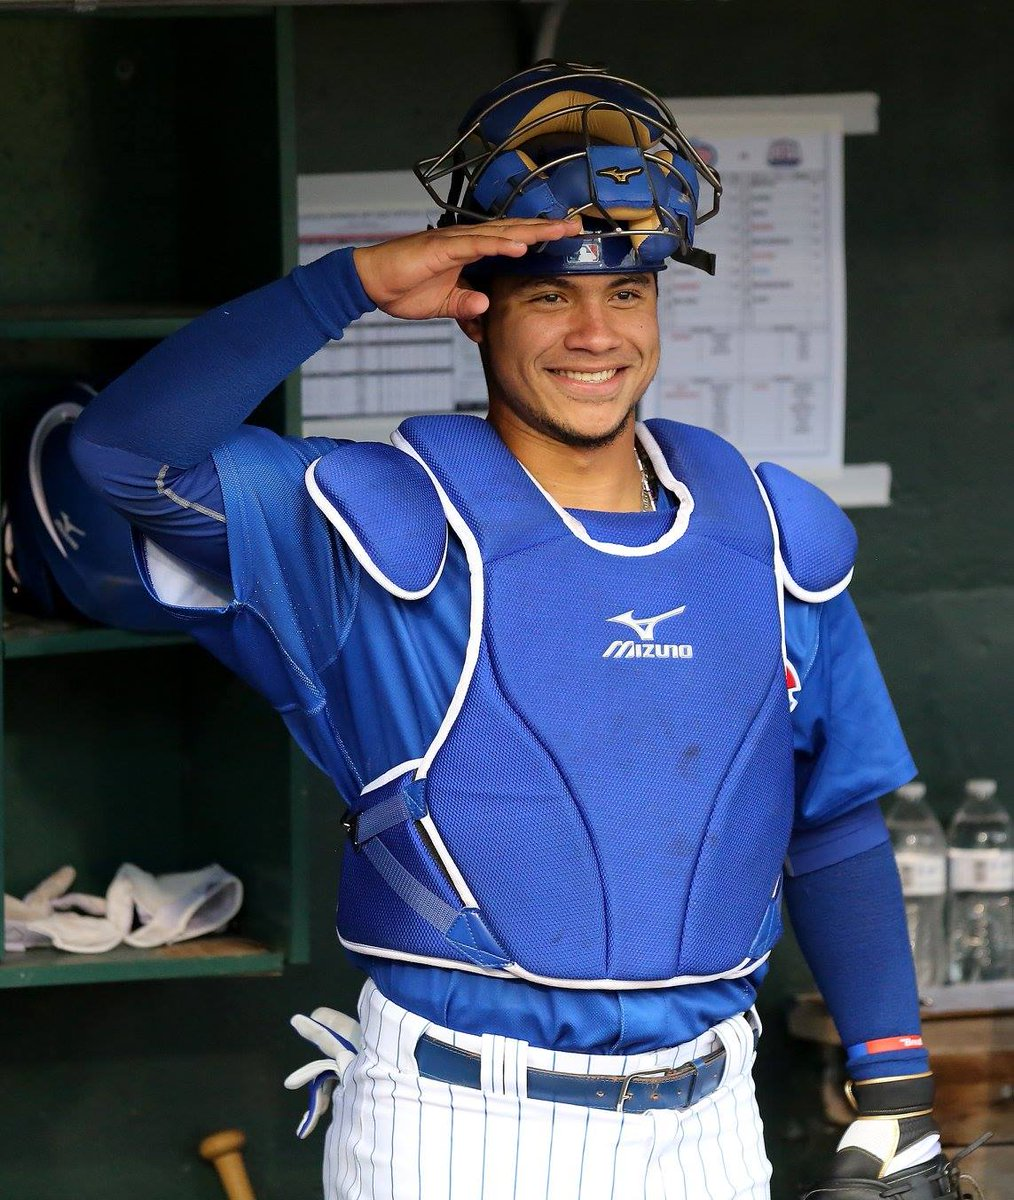 Wishing a very Happy Birthday to I-Cubs' catcher, Willson Contreras! https://t.co/NGwuniBEKD